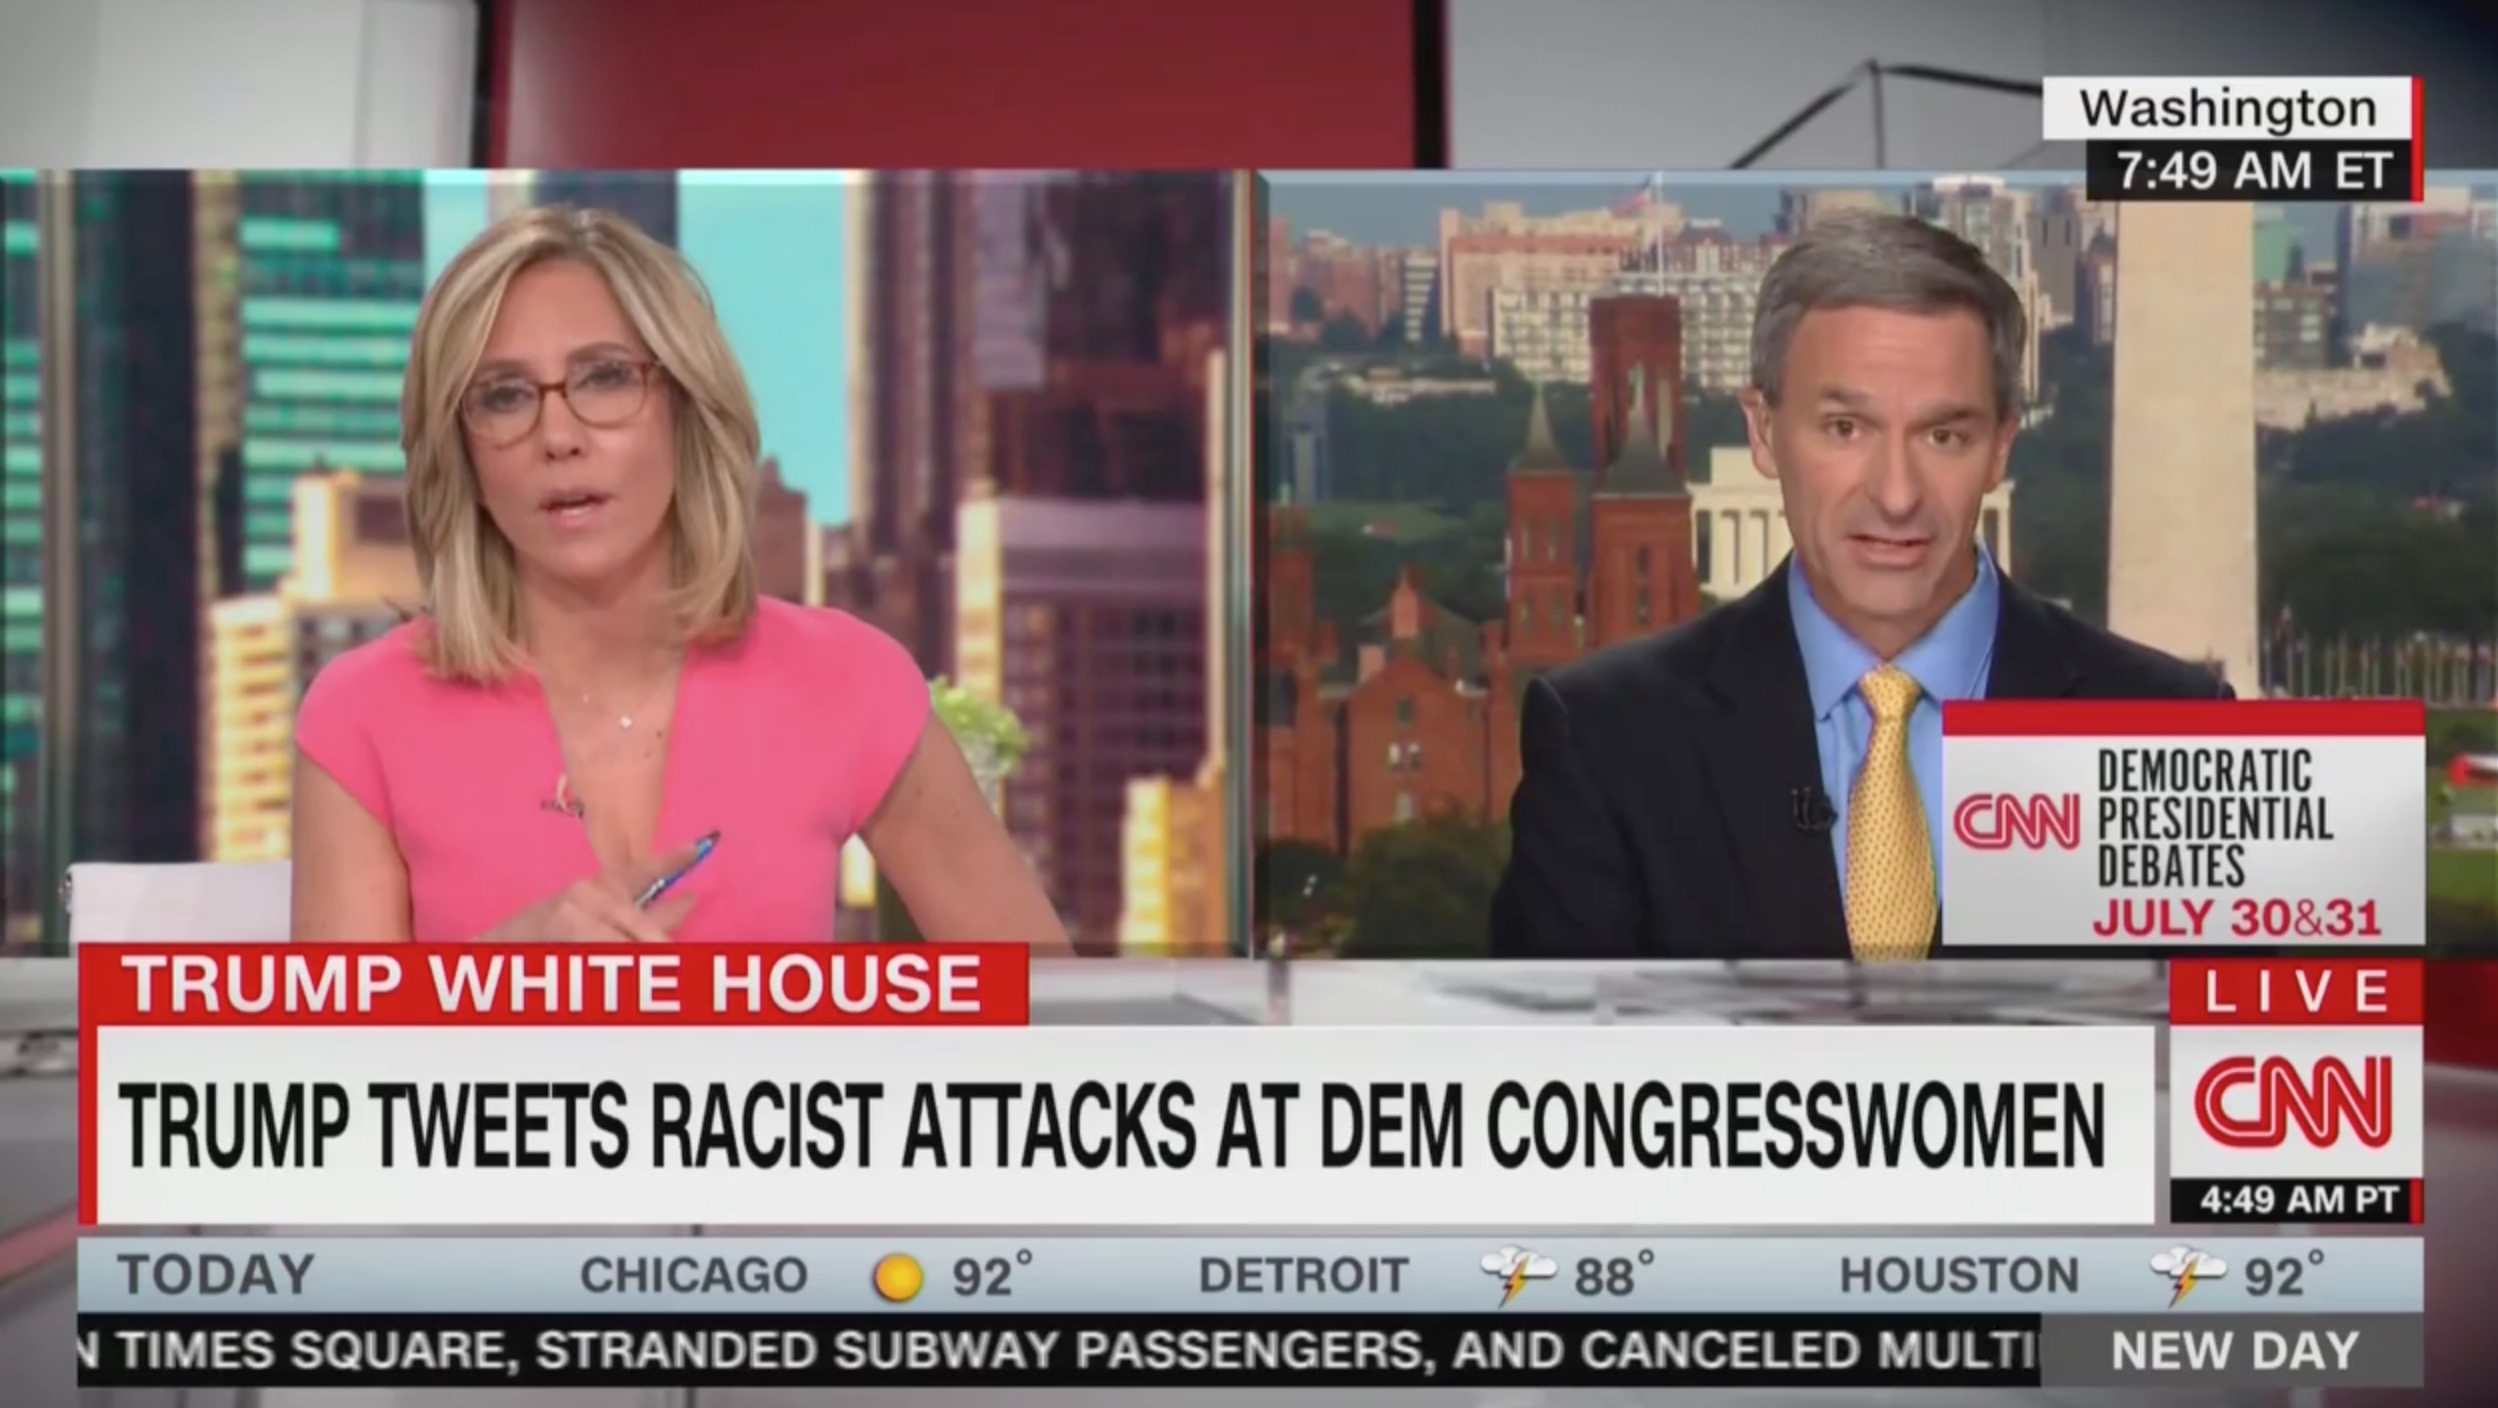 Ken Cuccinelli Answers 'So What?' When Grilled by CNN's Camerota Over Trump's Racist Tweets